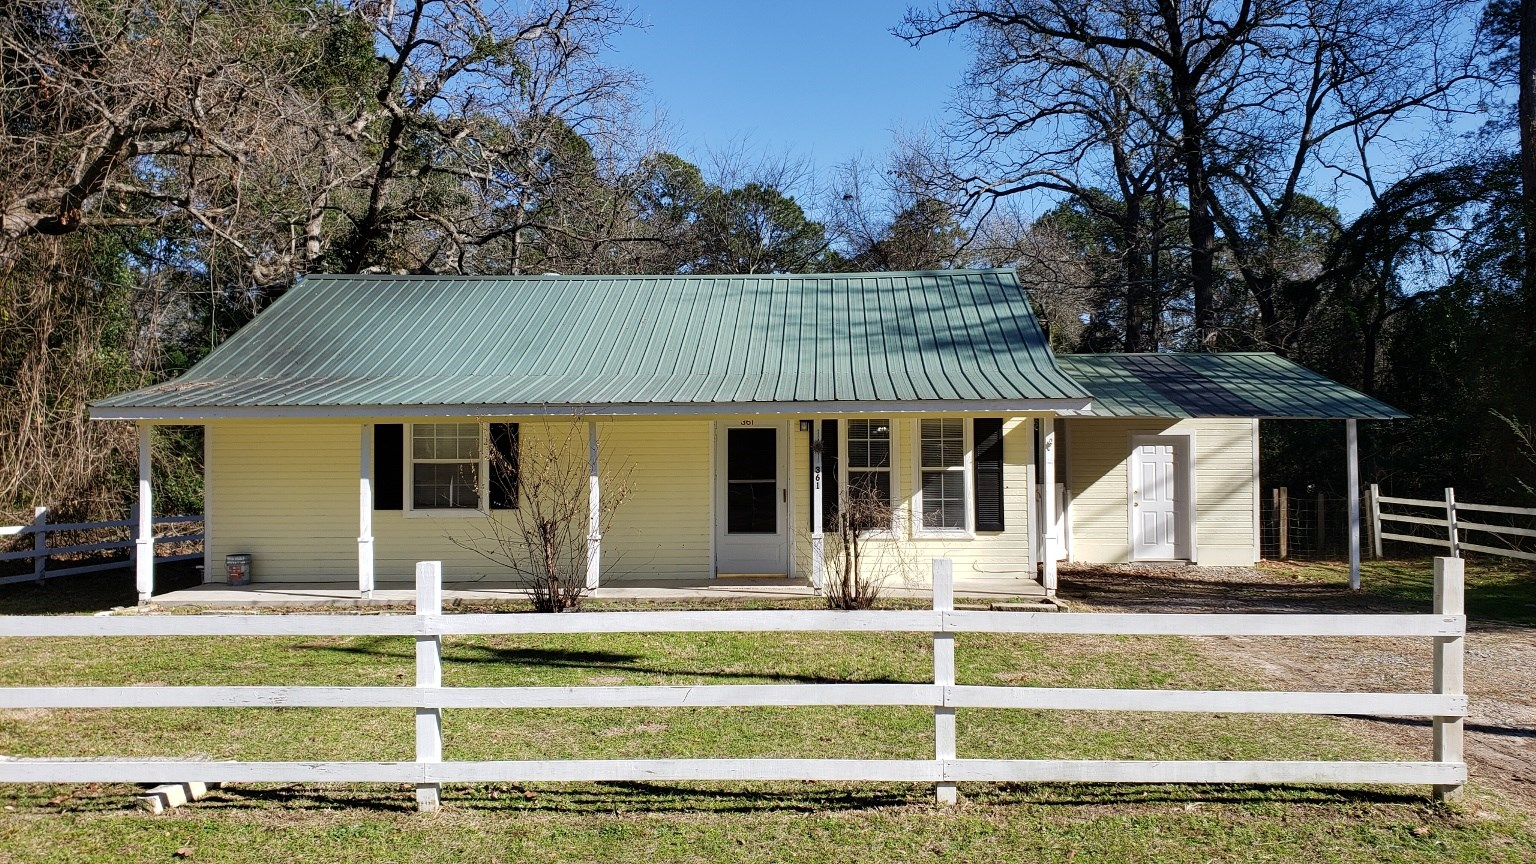 SMALL HOME FOR SALE | LAKE PALESTINE NEIGHBORHOOD IN EAST TX